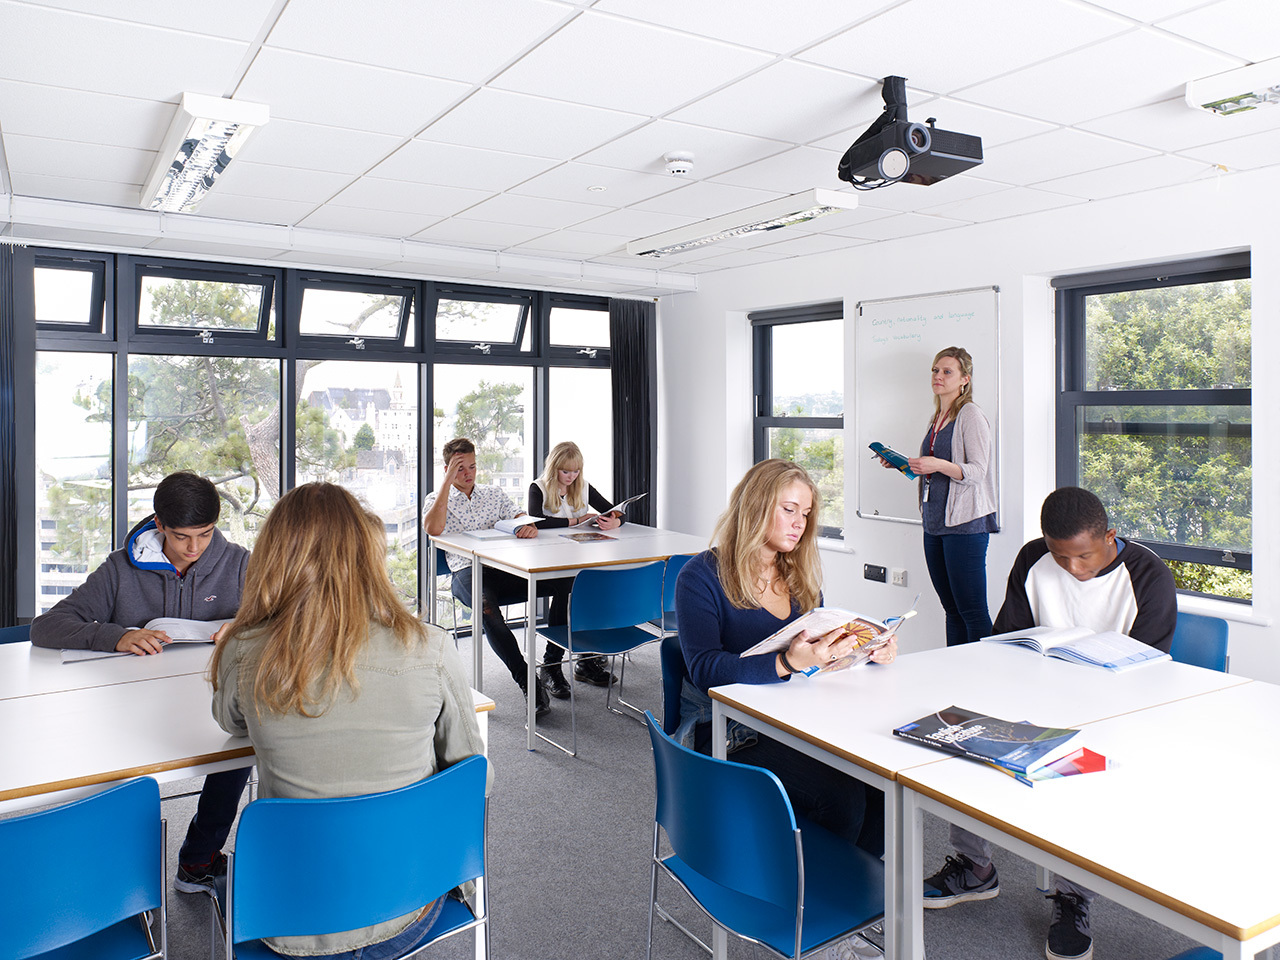 EF Academy Torbay Photo #3 - Small class sizes and modern facilities at EF Academy Torbay make learning highly engaging.